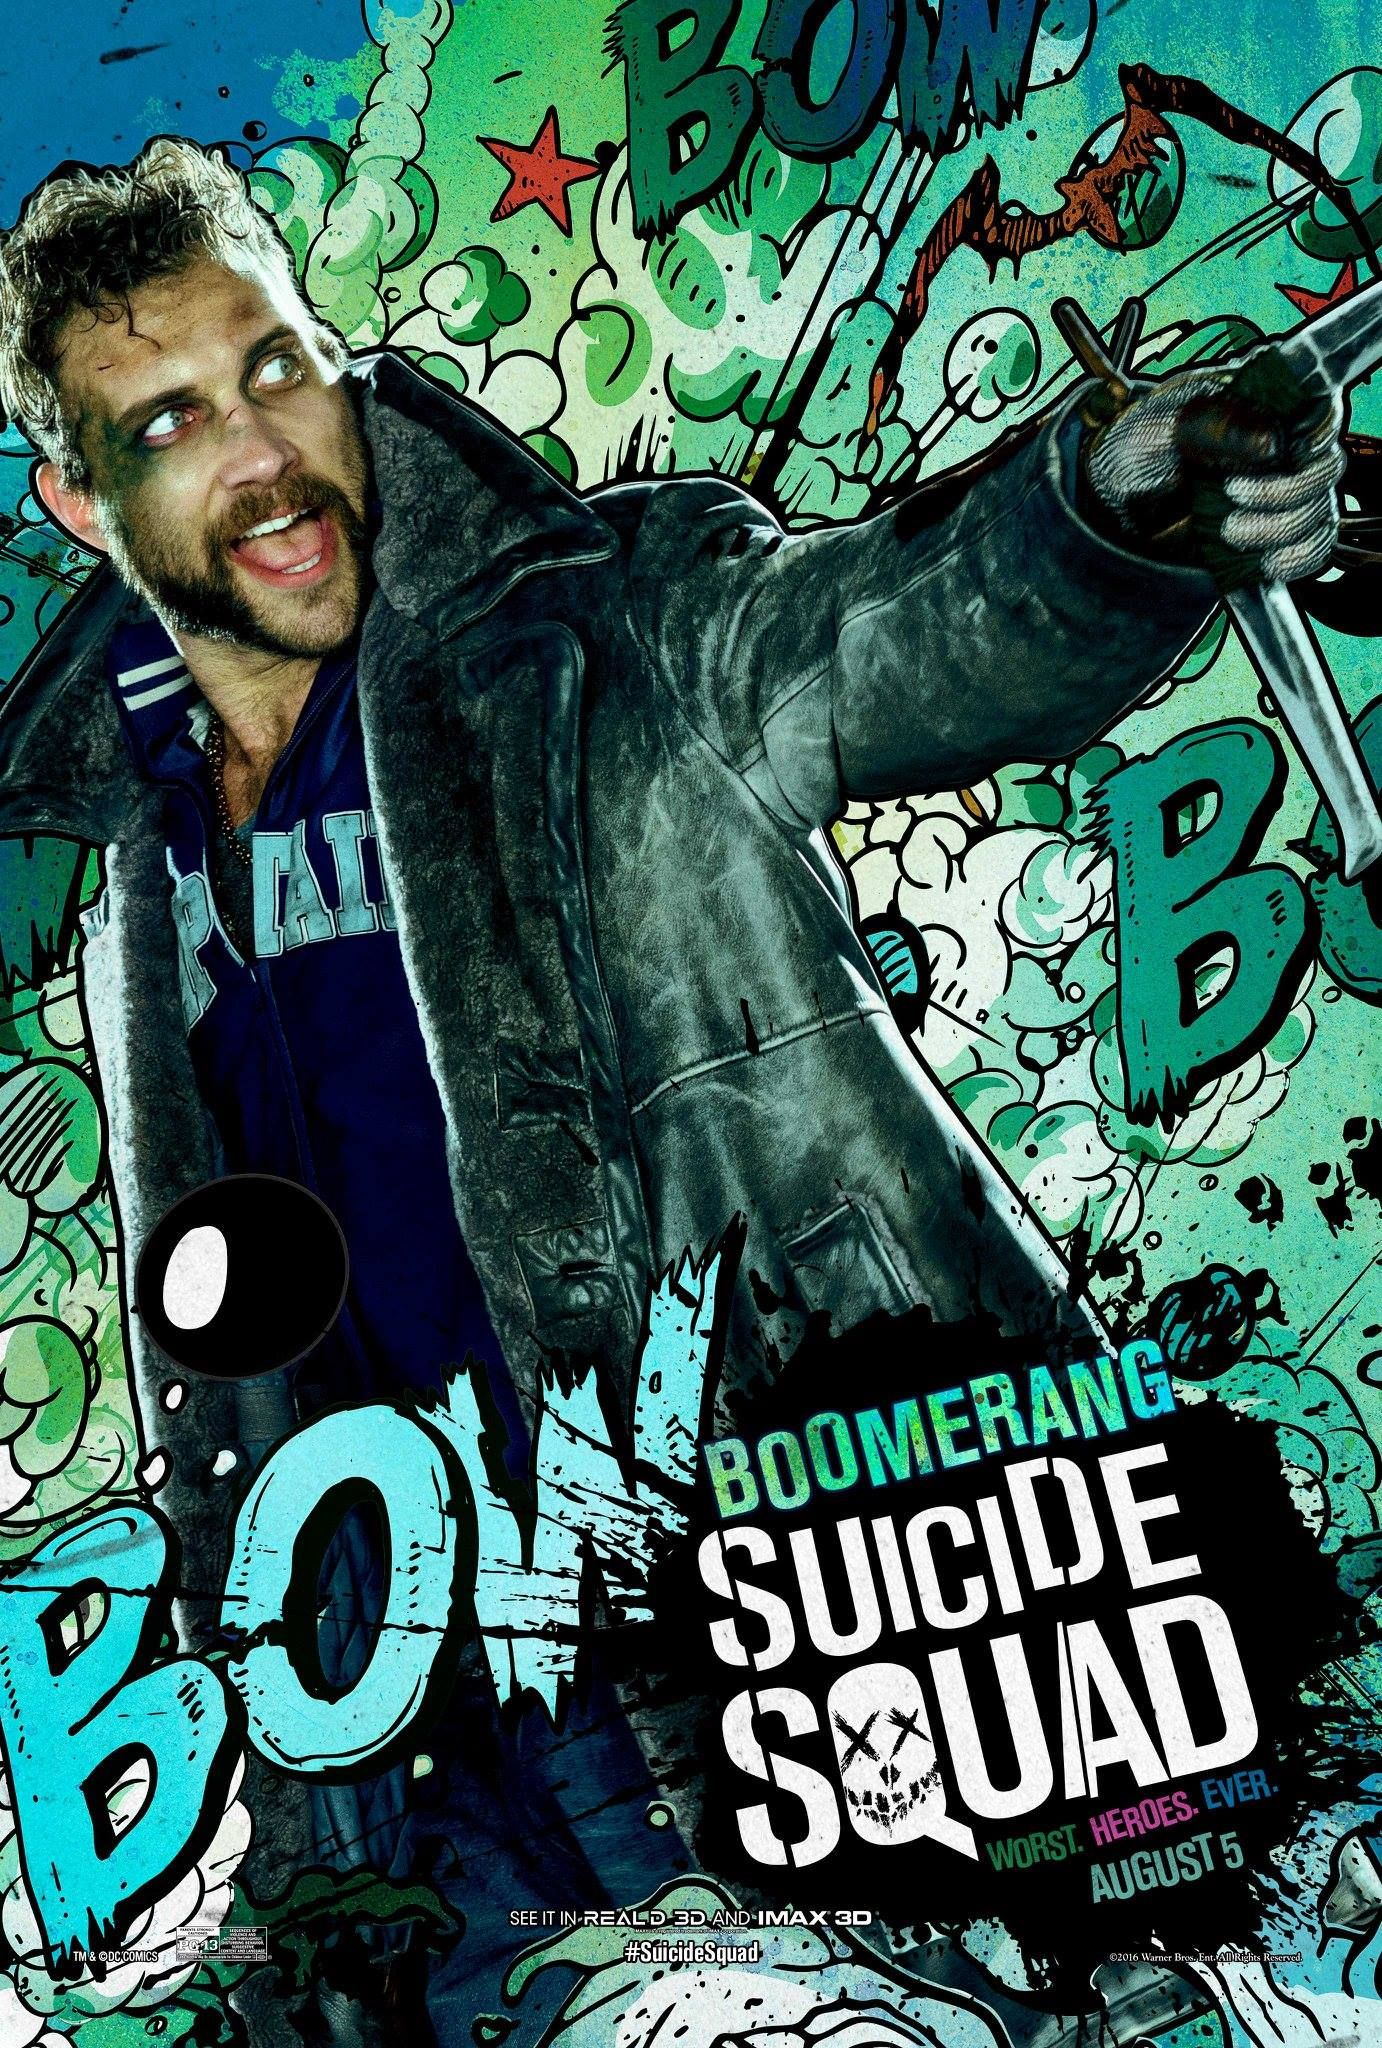 WHEN THE HUNTER BECOMES THE HUNTED ✸ mission III Suicide-squad-poster-boomerang-1